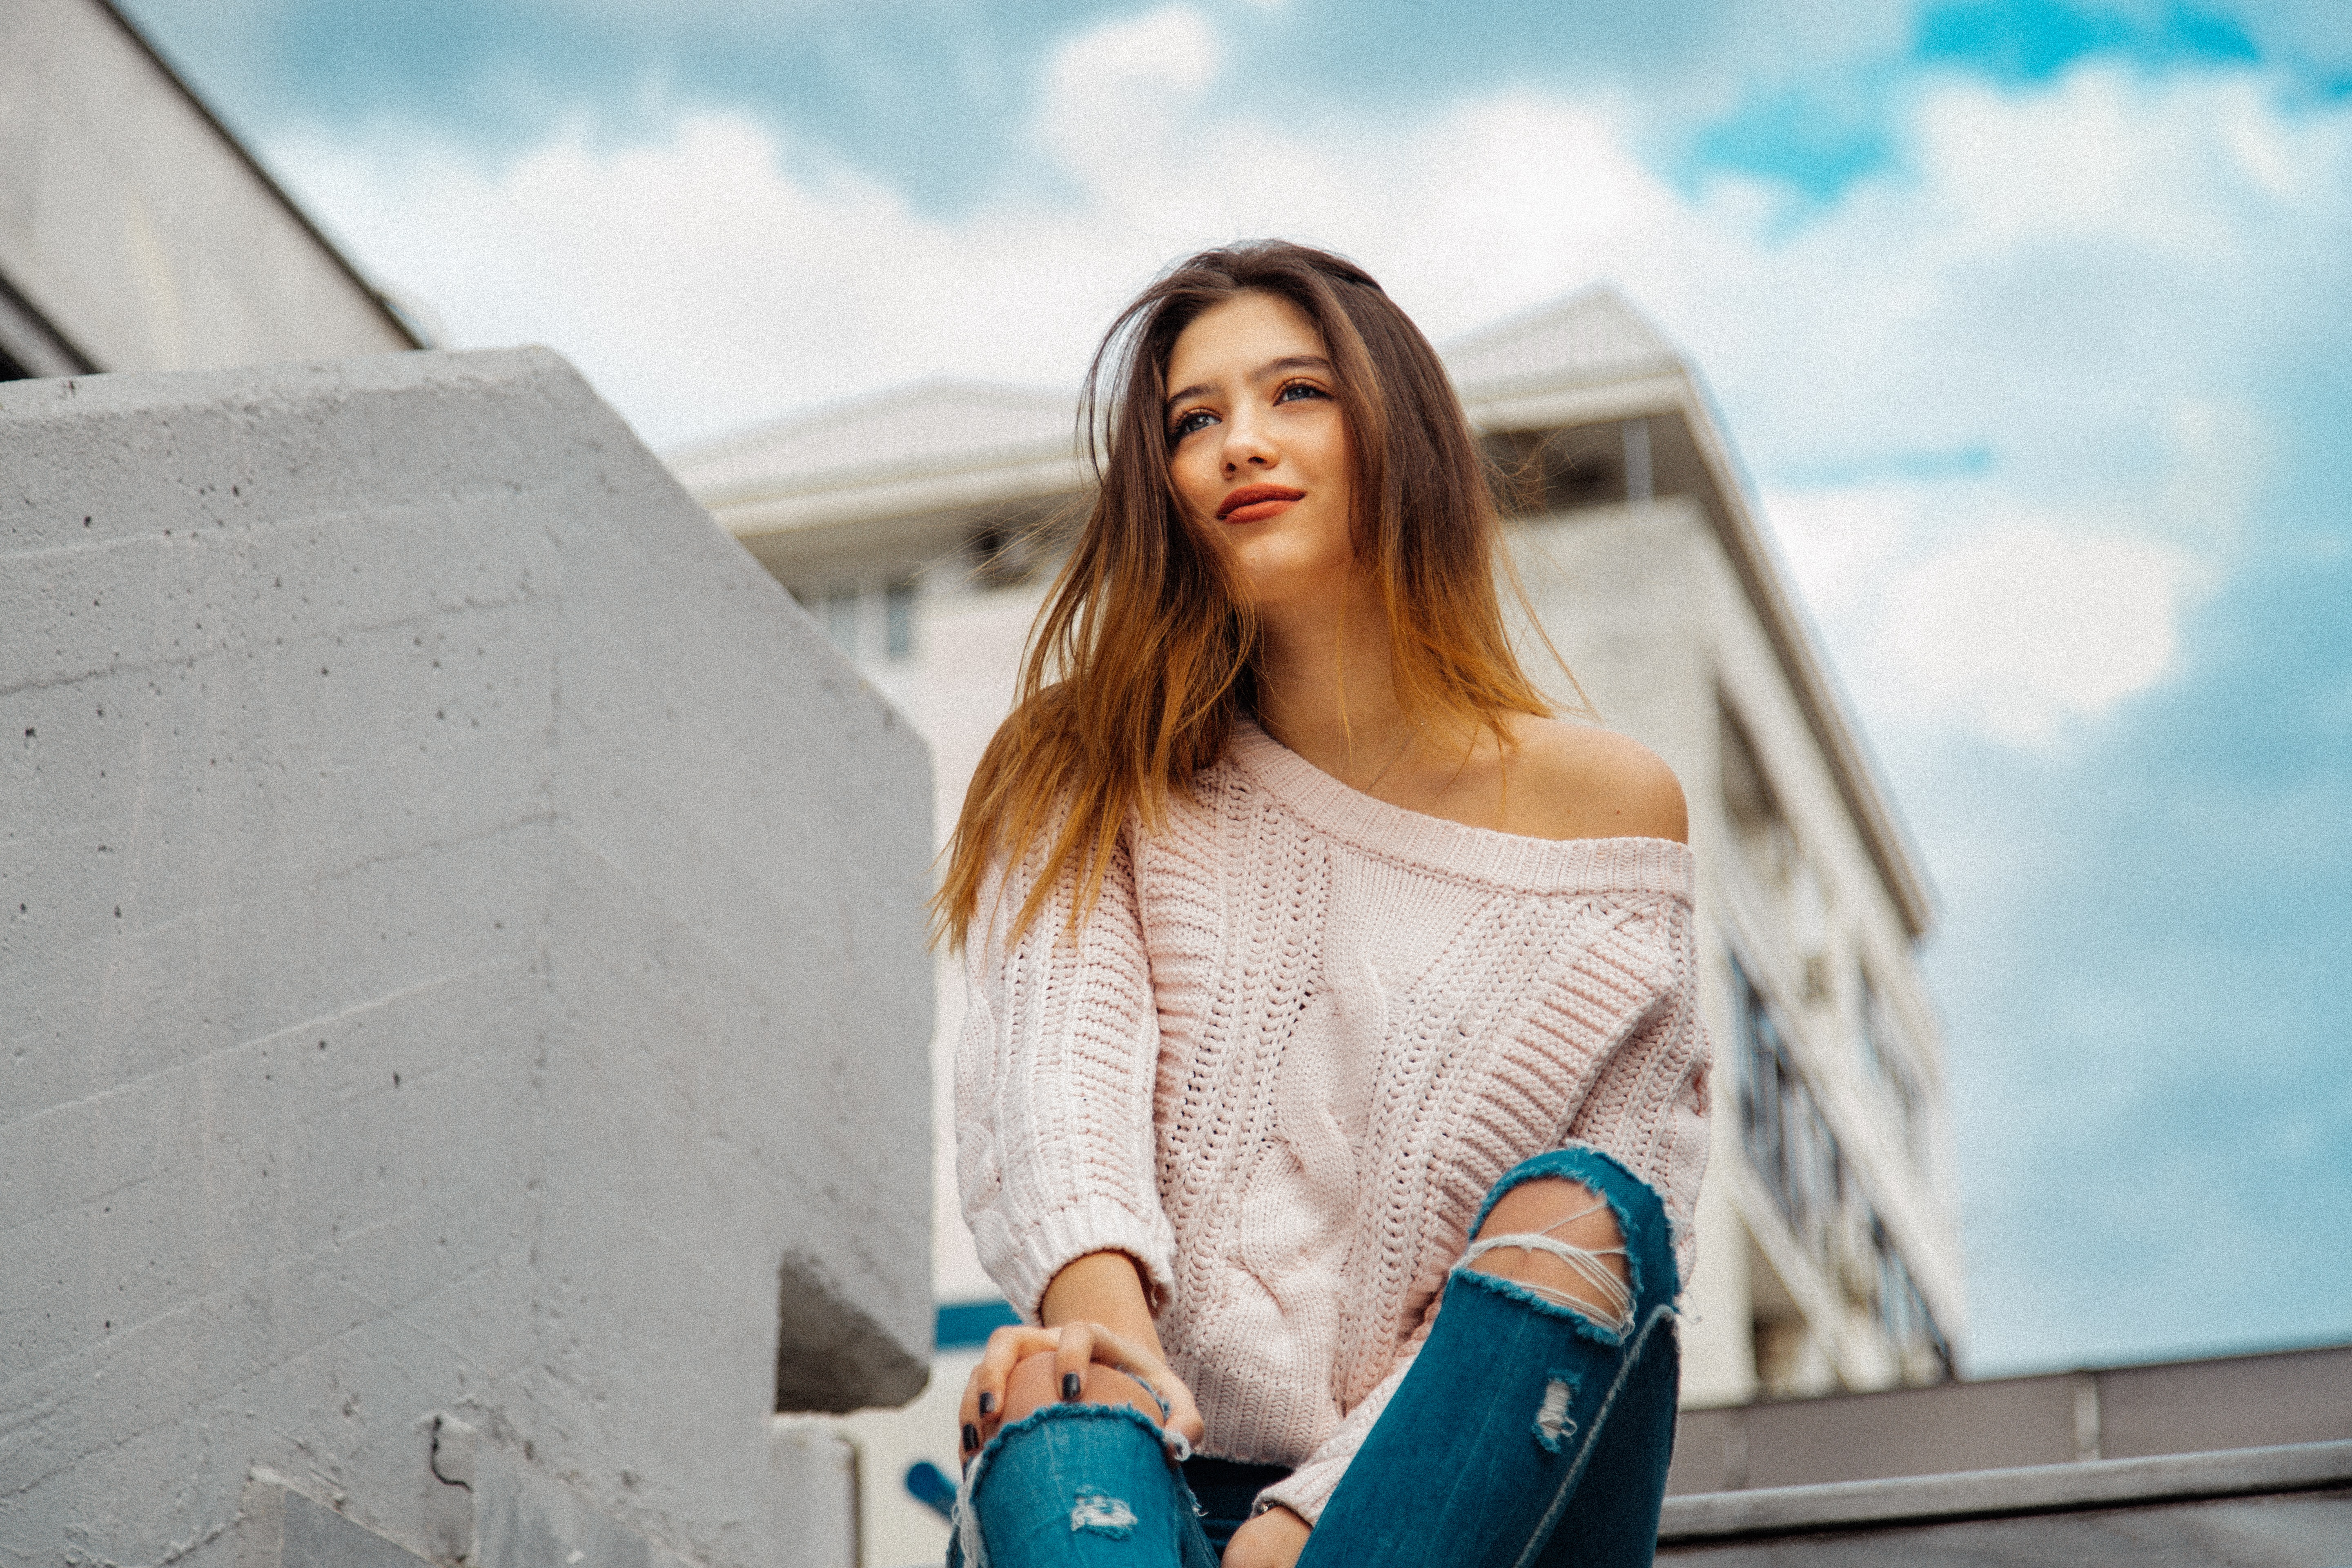 woman smiling and sitting on outdoor stair